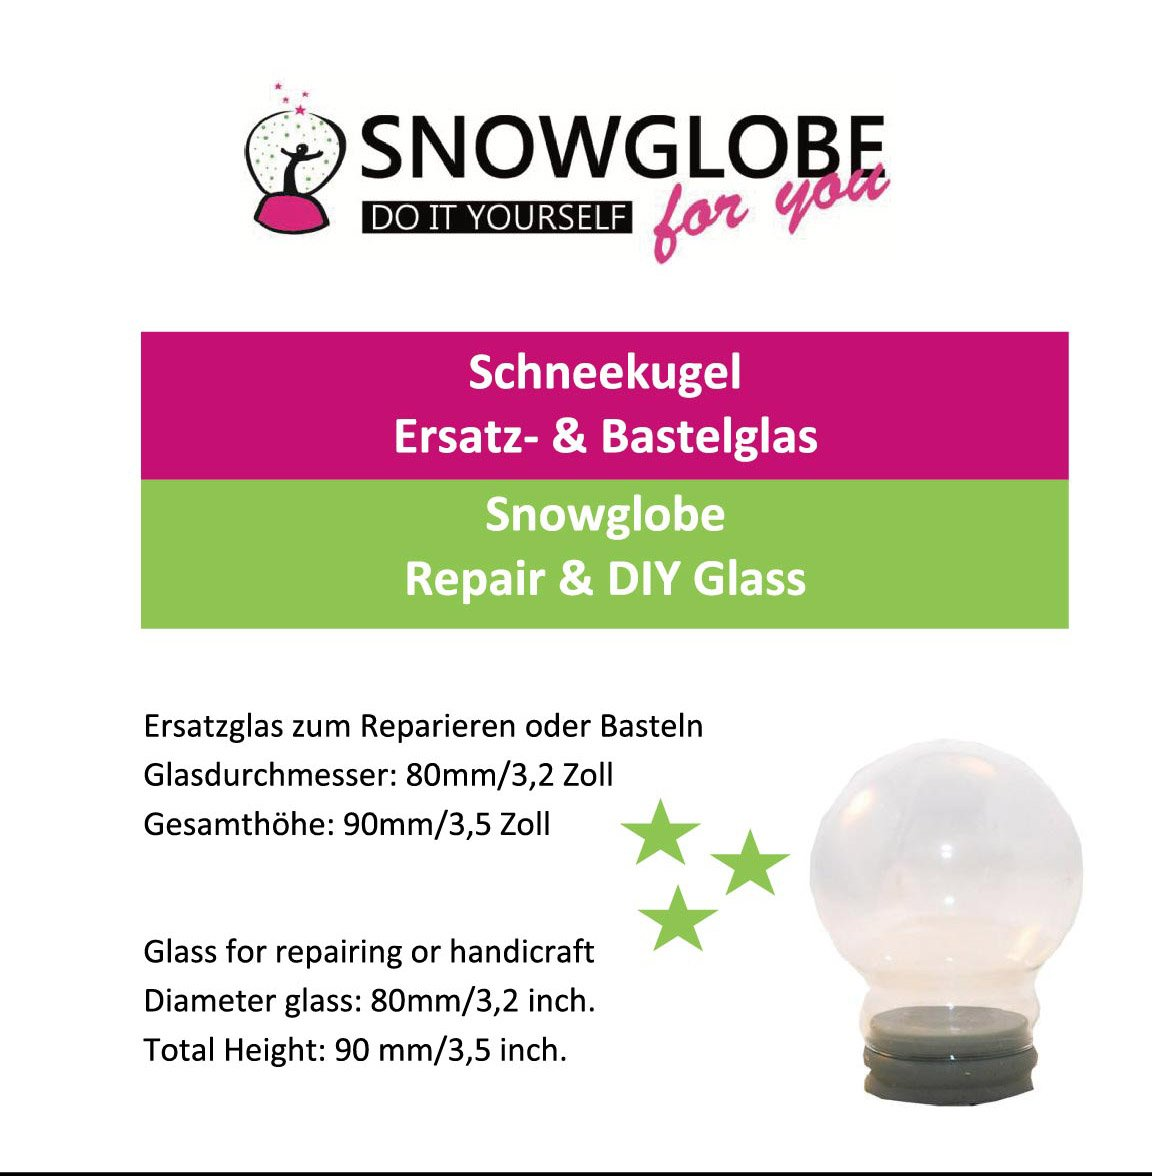 40003 Snowglobe for You - Do It Yourself (DIY) Replacement Glass Dia 80mm Schneekugelhaus